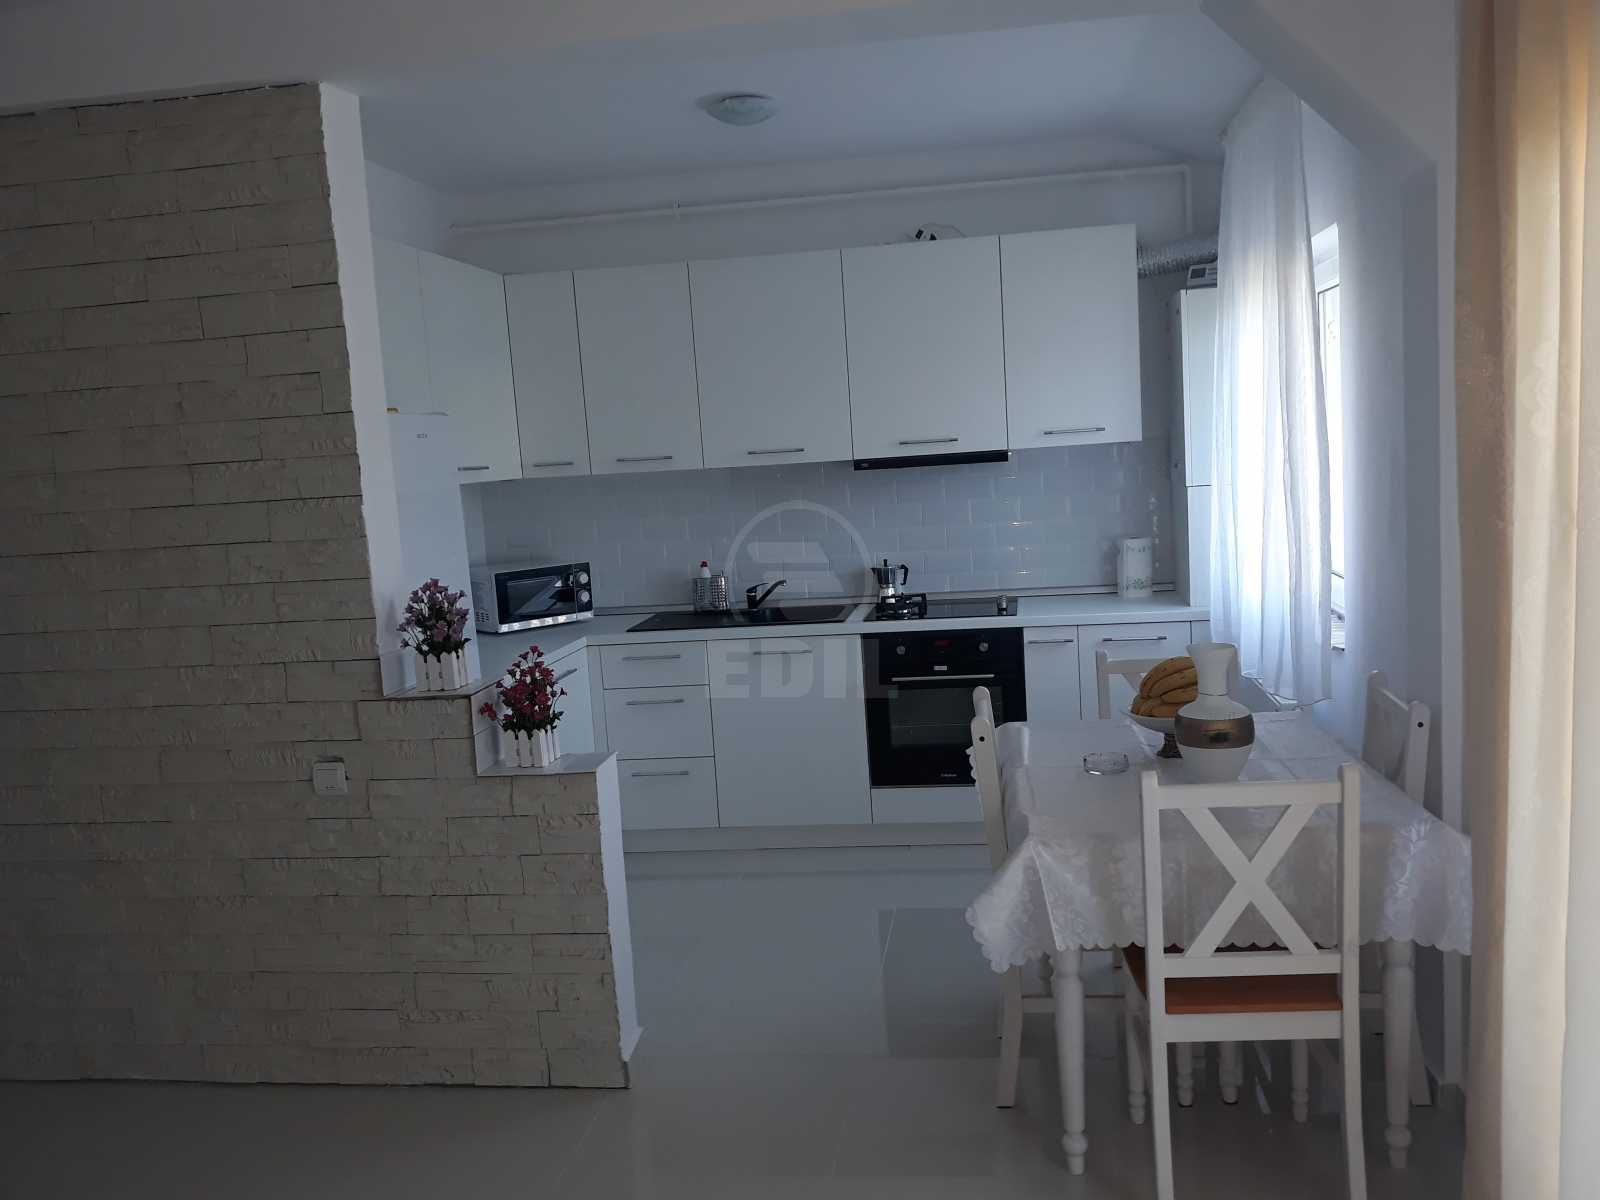 Apartment for rent 2 rooms, APCJ234187FLO-4